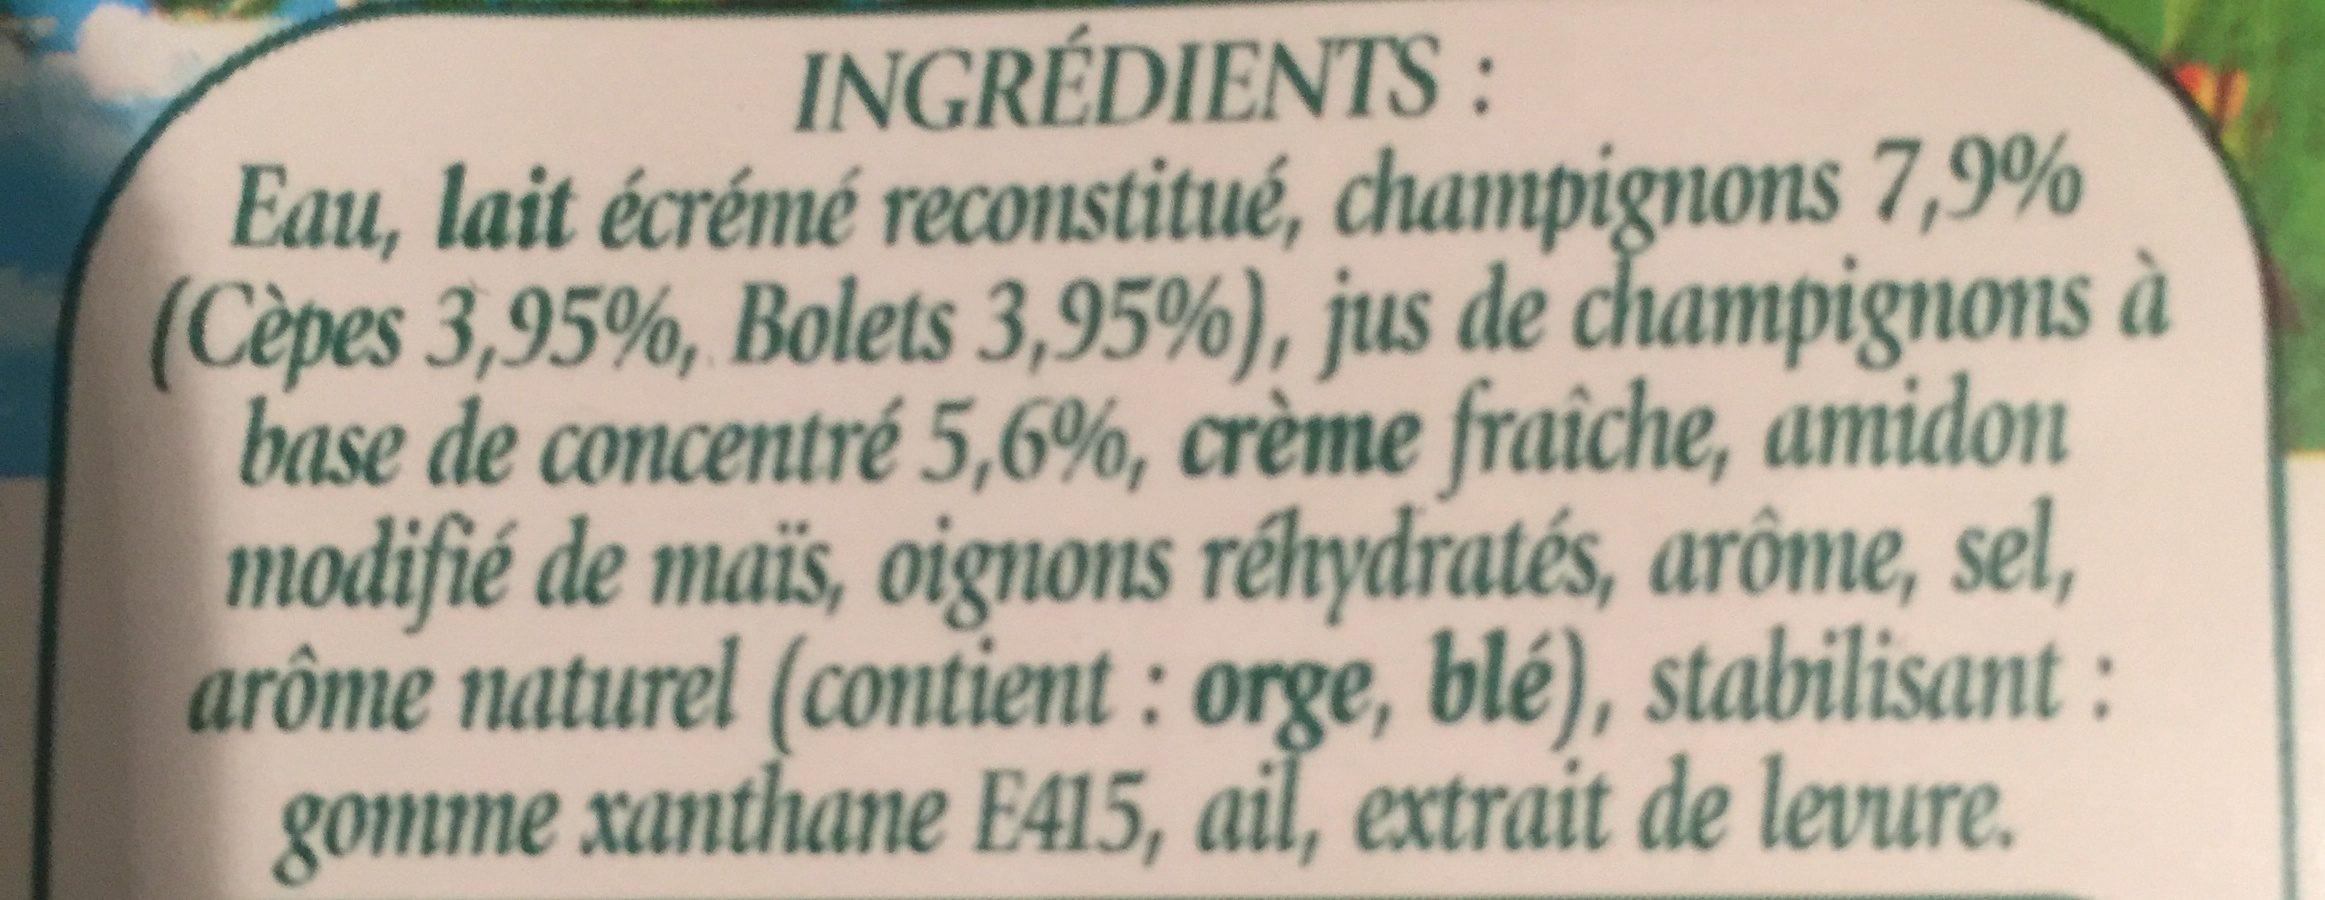 Velouté De Champignons - Ingredients